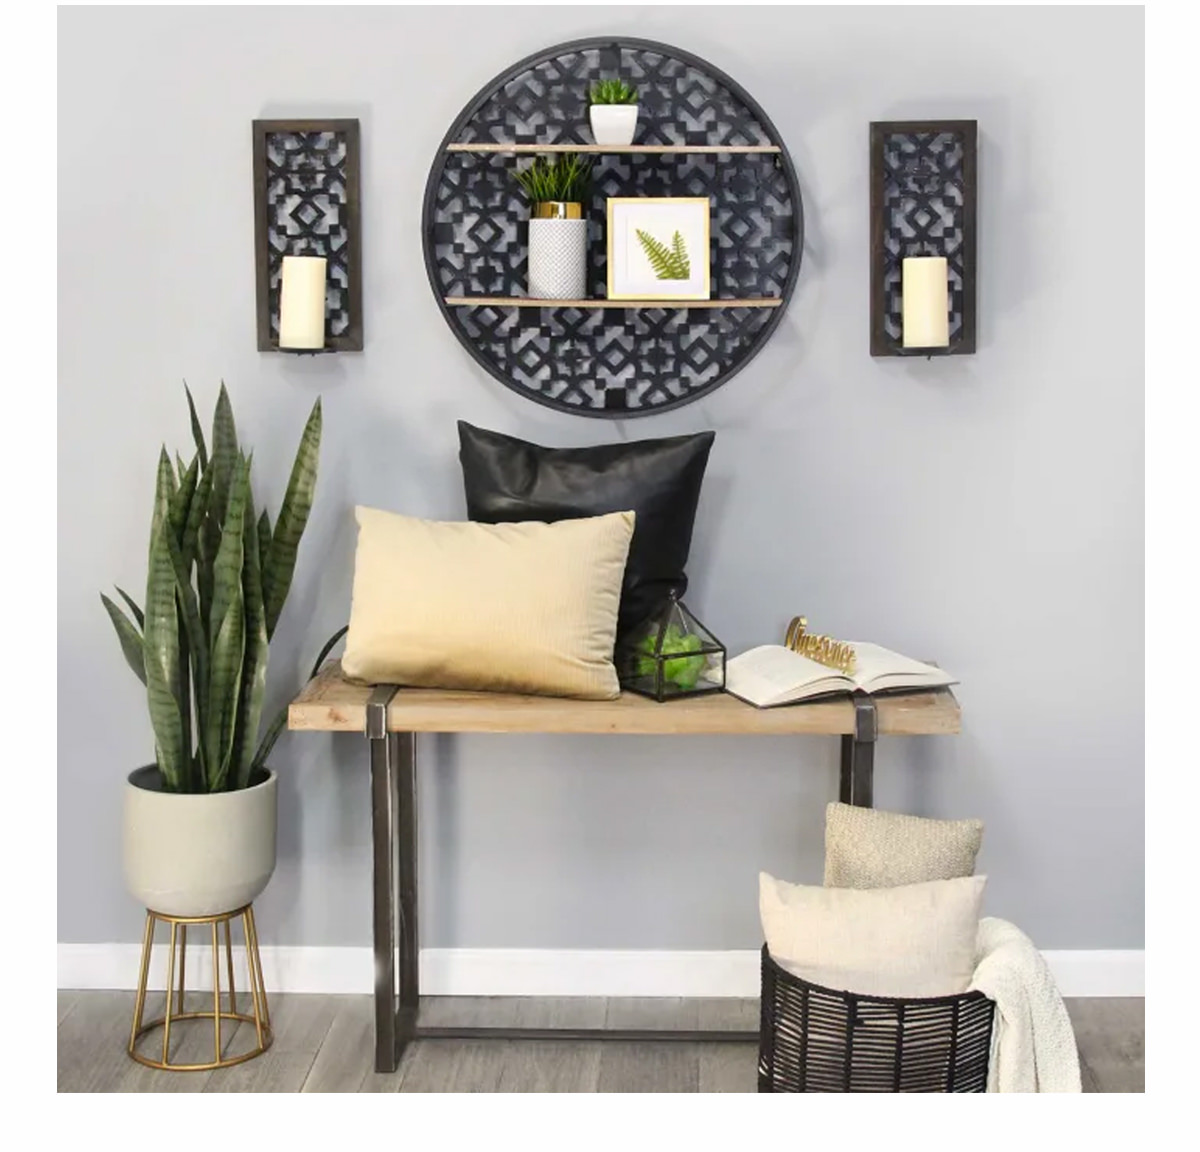 Round Black Boho Metal and Wood Shell   SHOP NOW